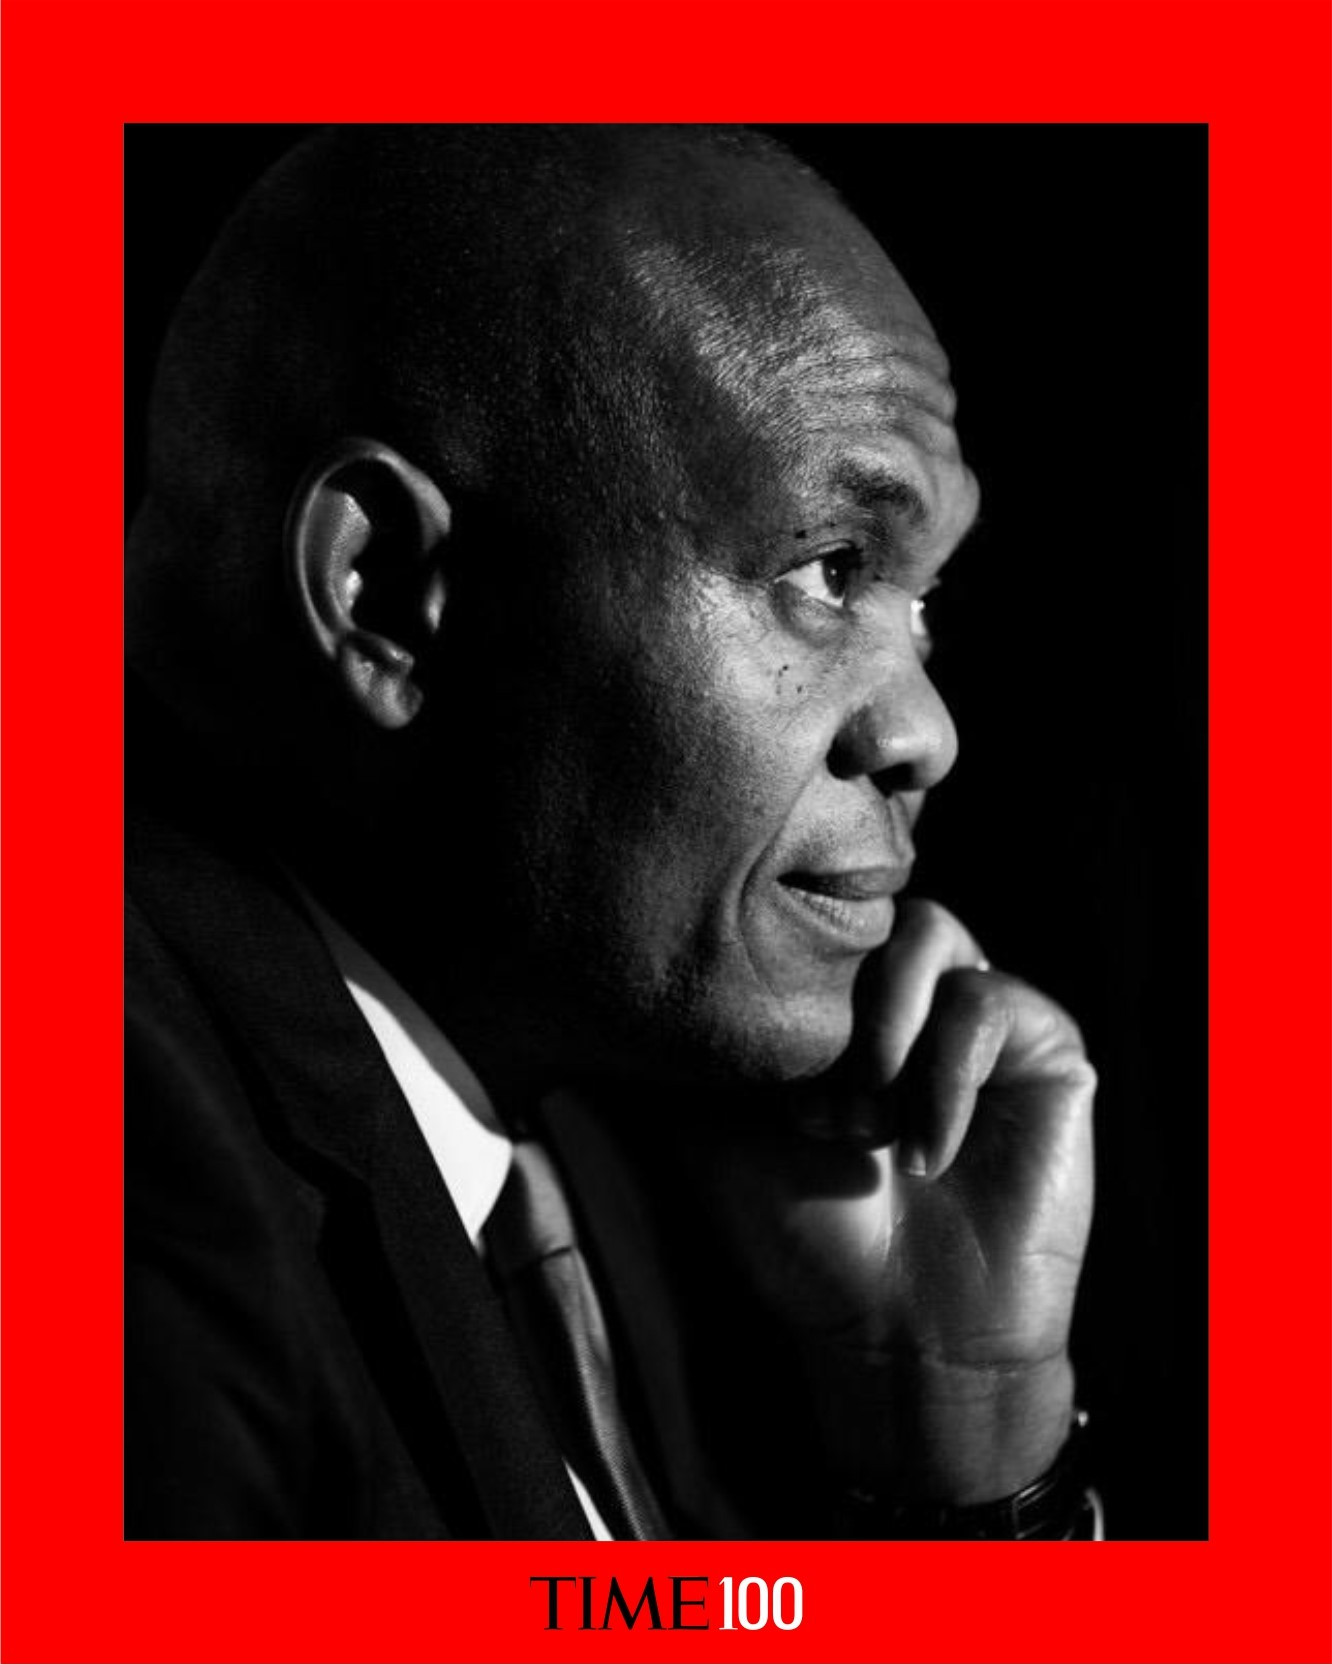 Tony Elumelu Makes It To 'Time 100' List Of 100 Most Influential People In The World 2020